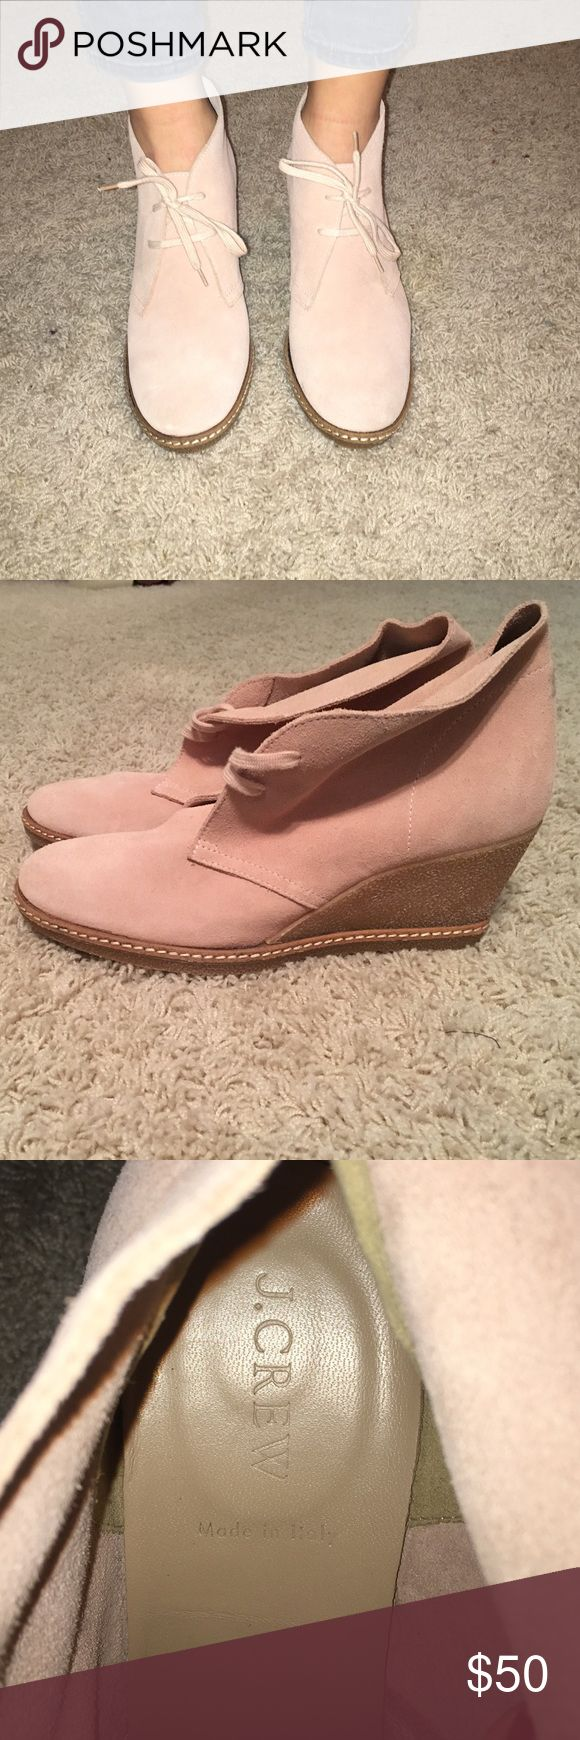 J. Crew suede wedge ankle boots J. Crew suede wedge ankle boots. Never worn! Light pink in color J. Crew Shoes Ankle Boots & Booties